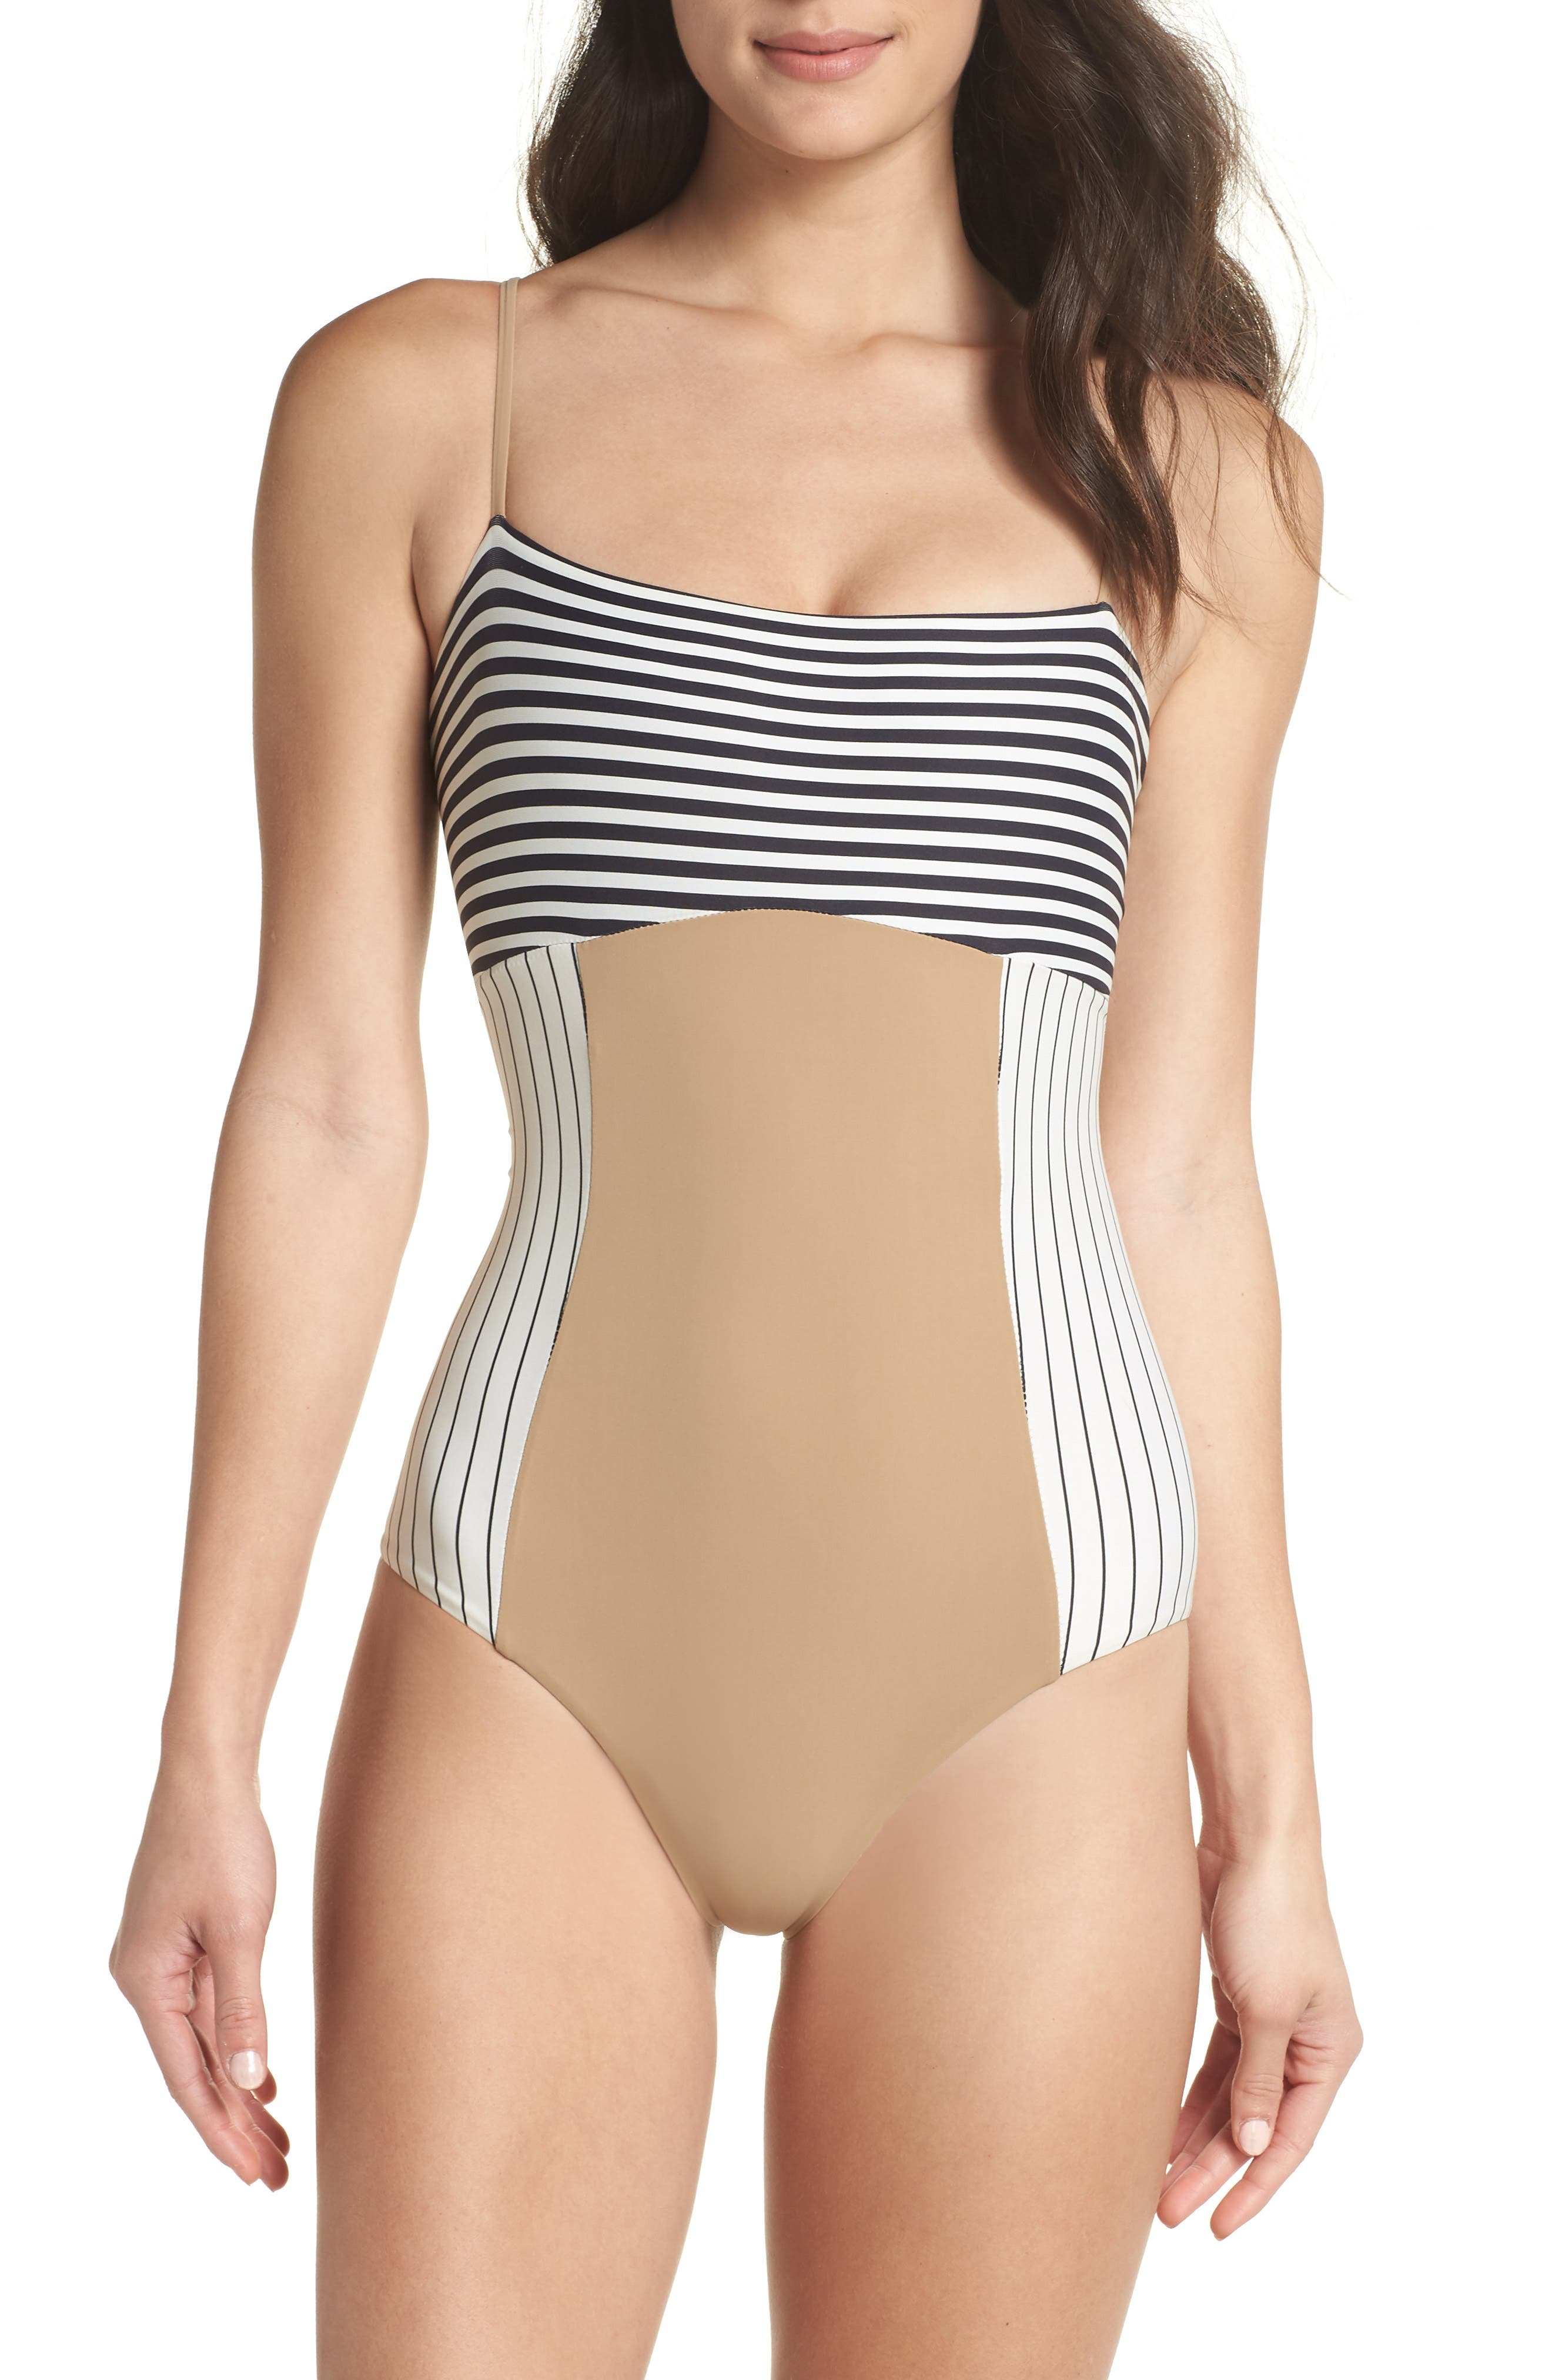 Finn One-Piece Swimsuit,                         Main,                         color, Business Casual